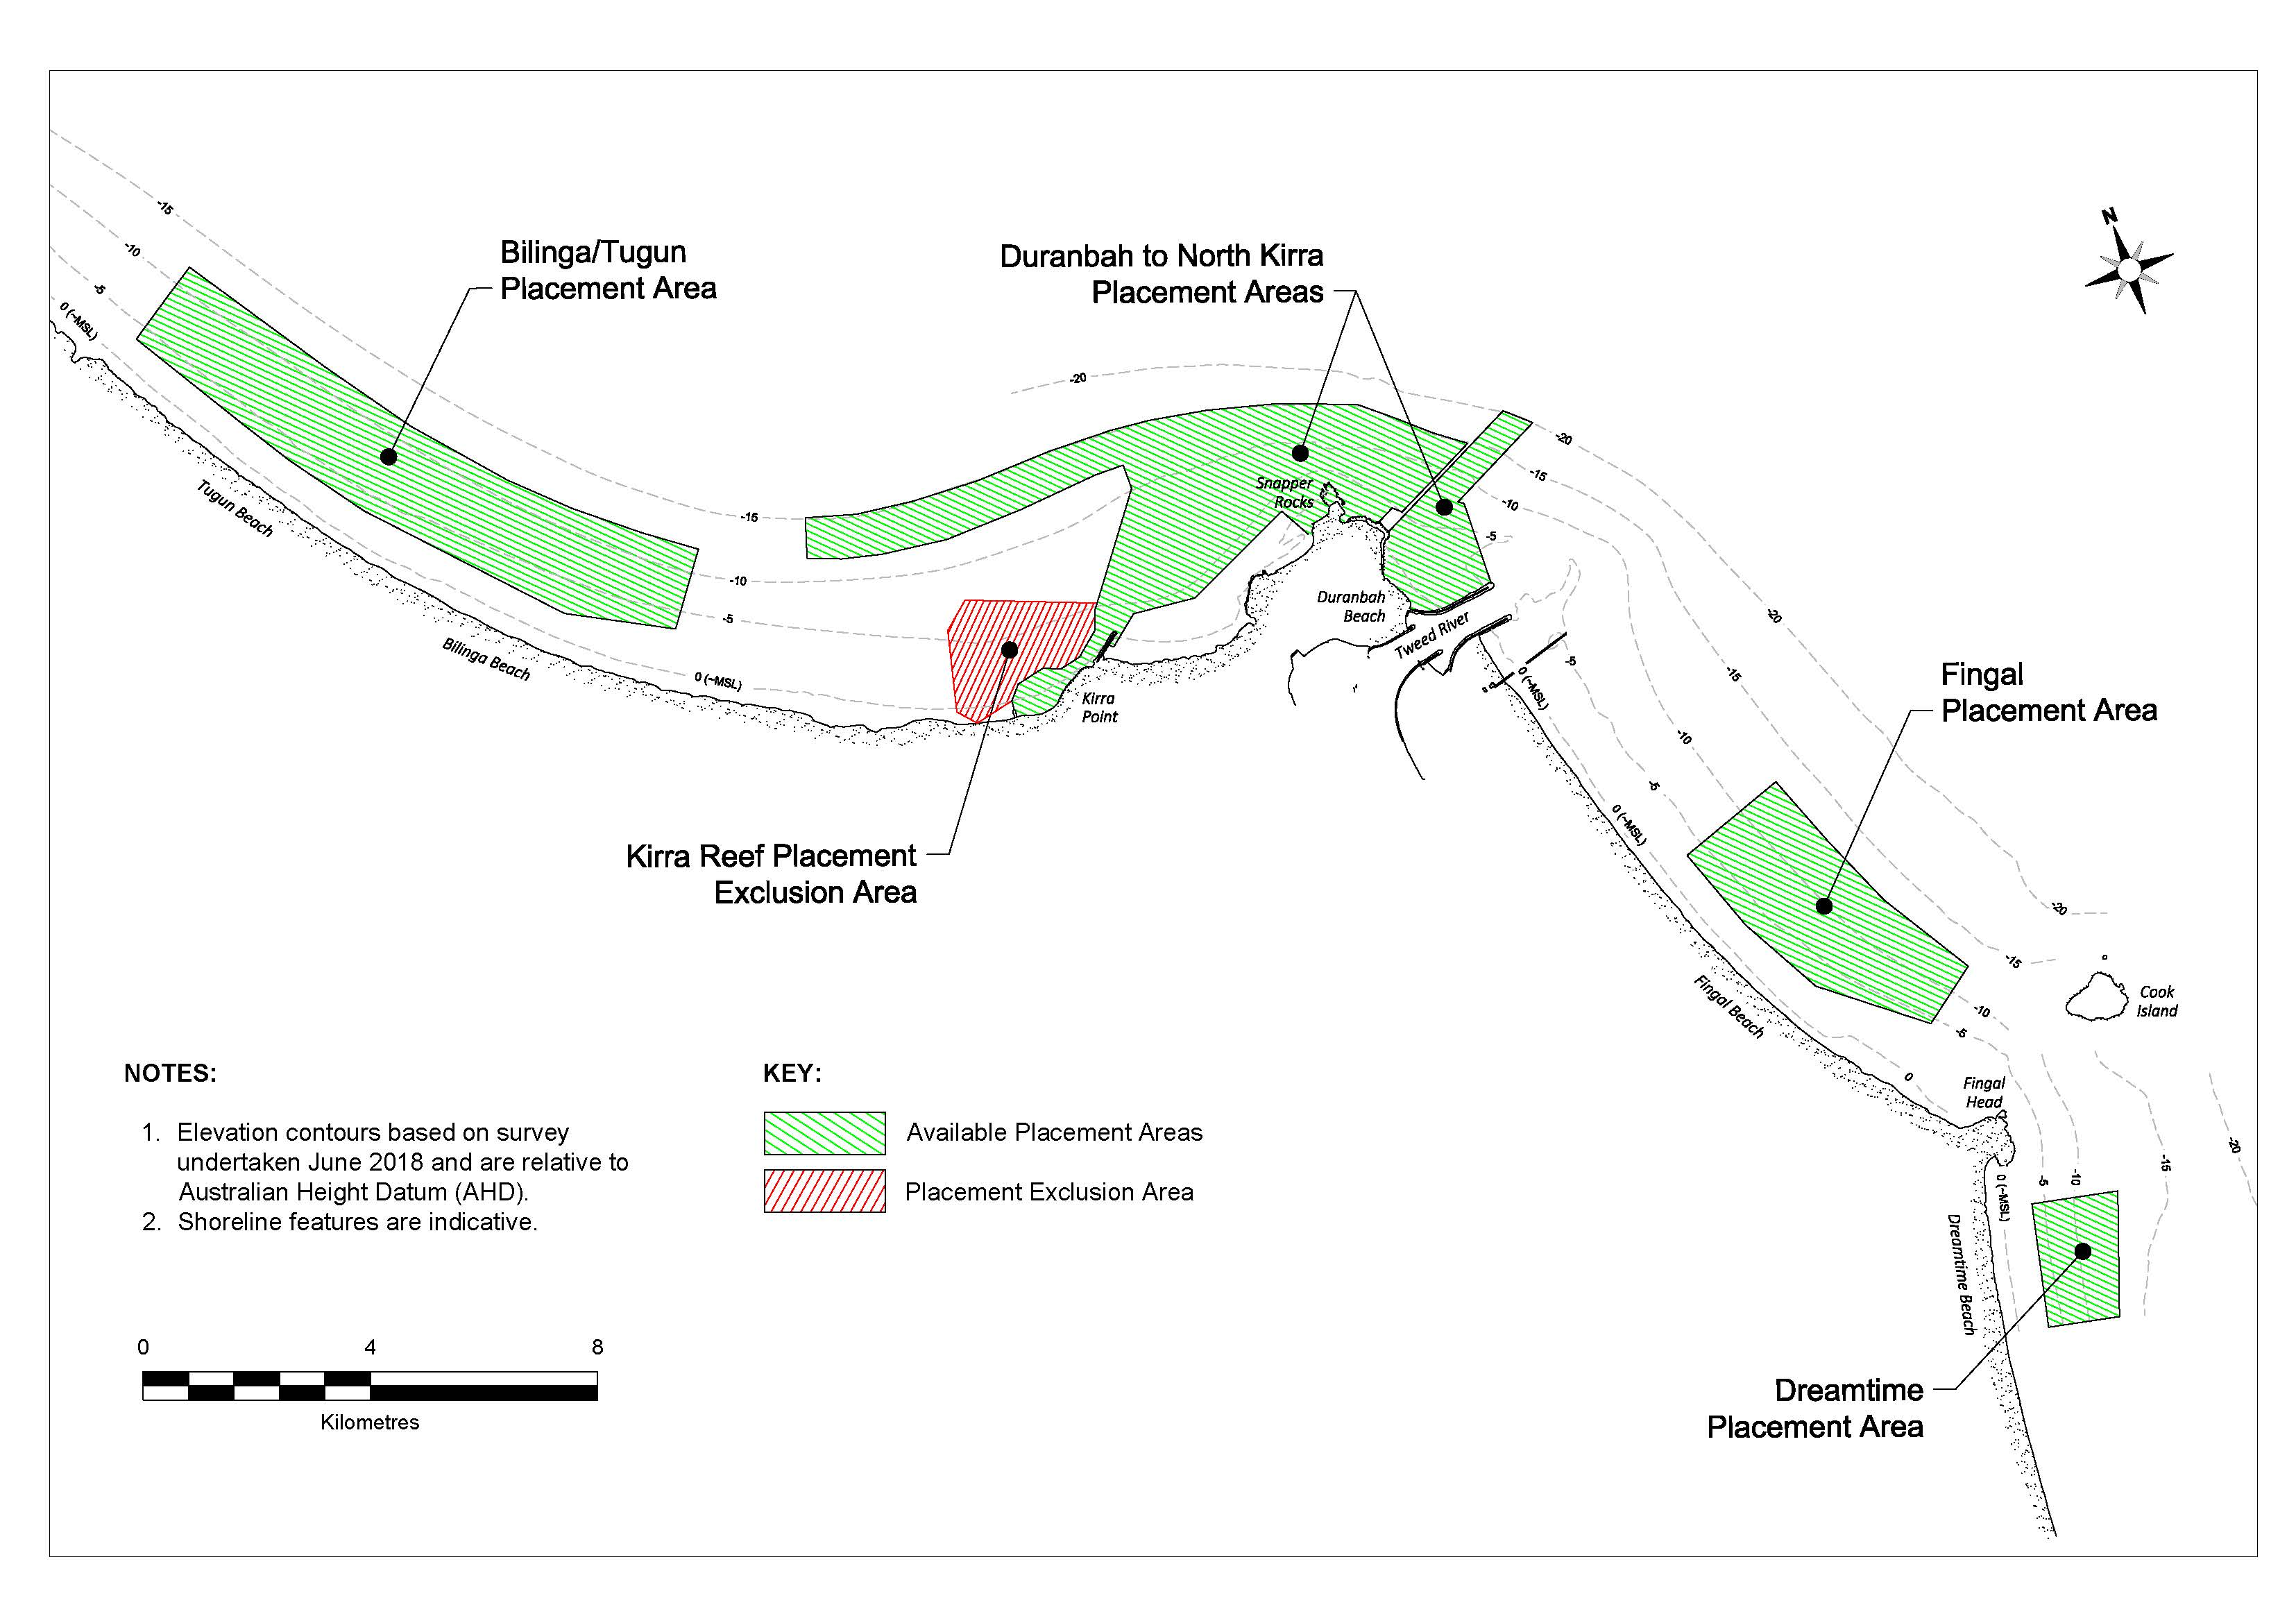 Dredging Placement Overview